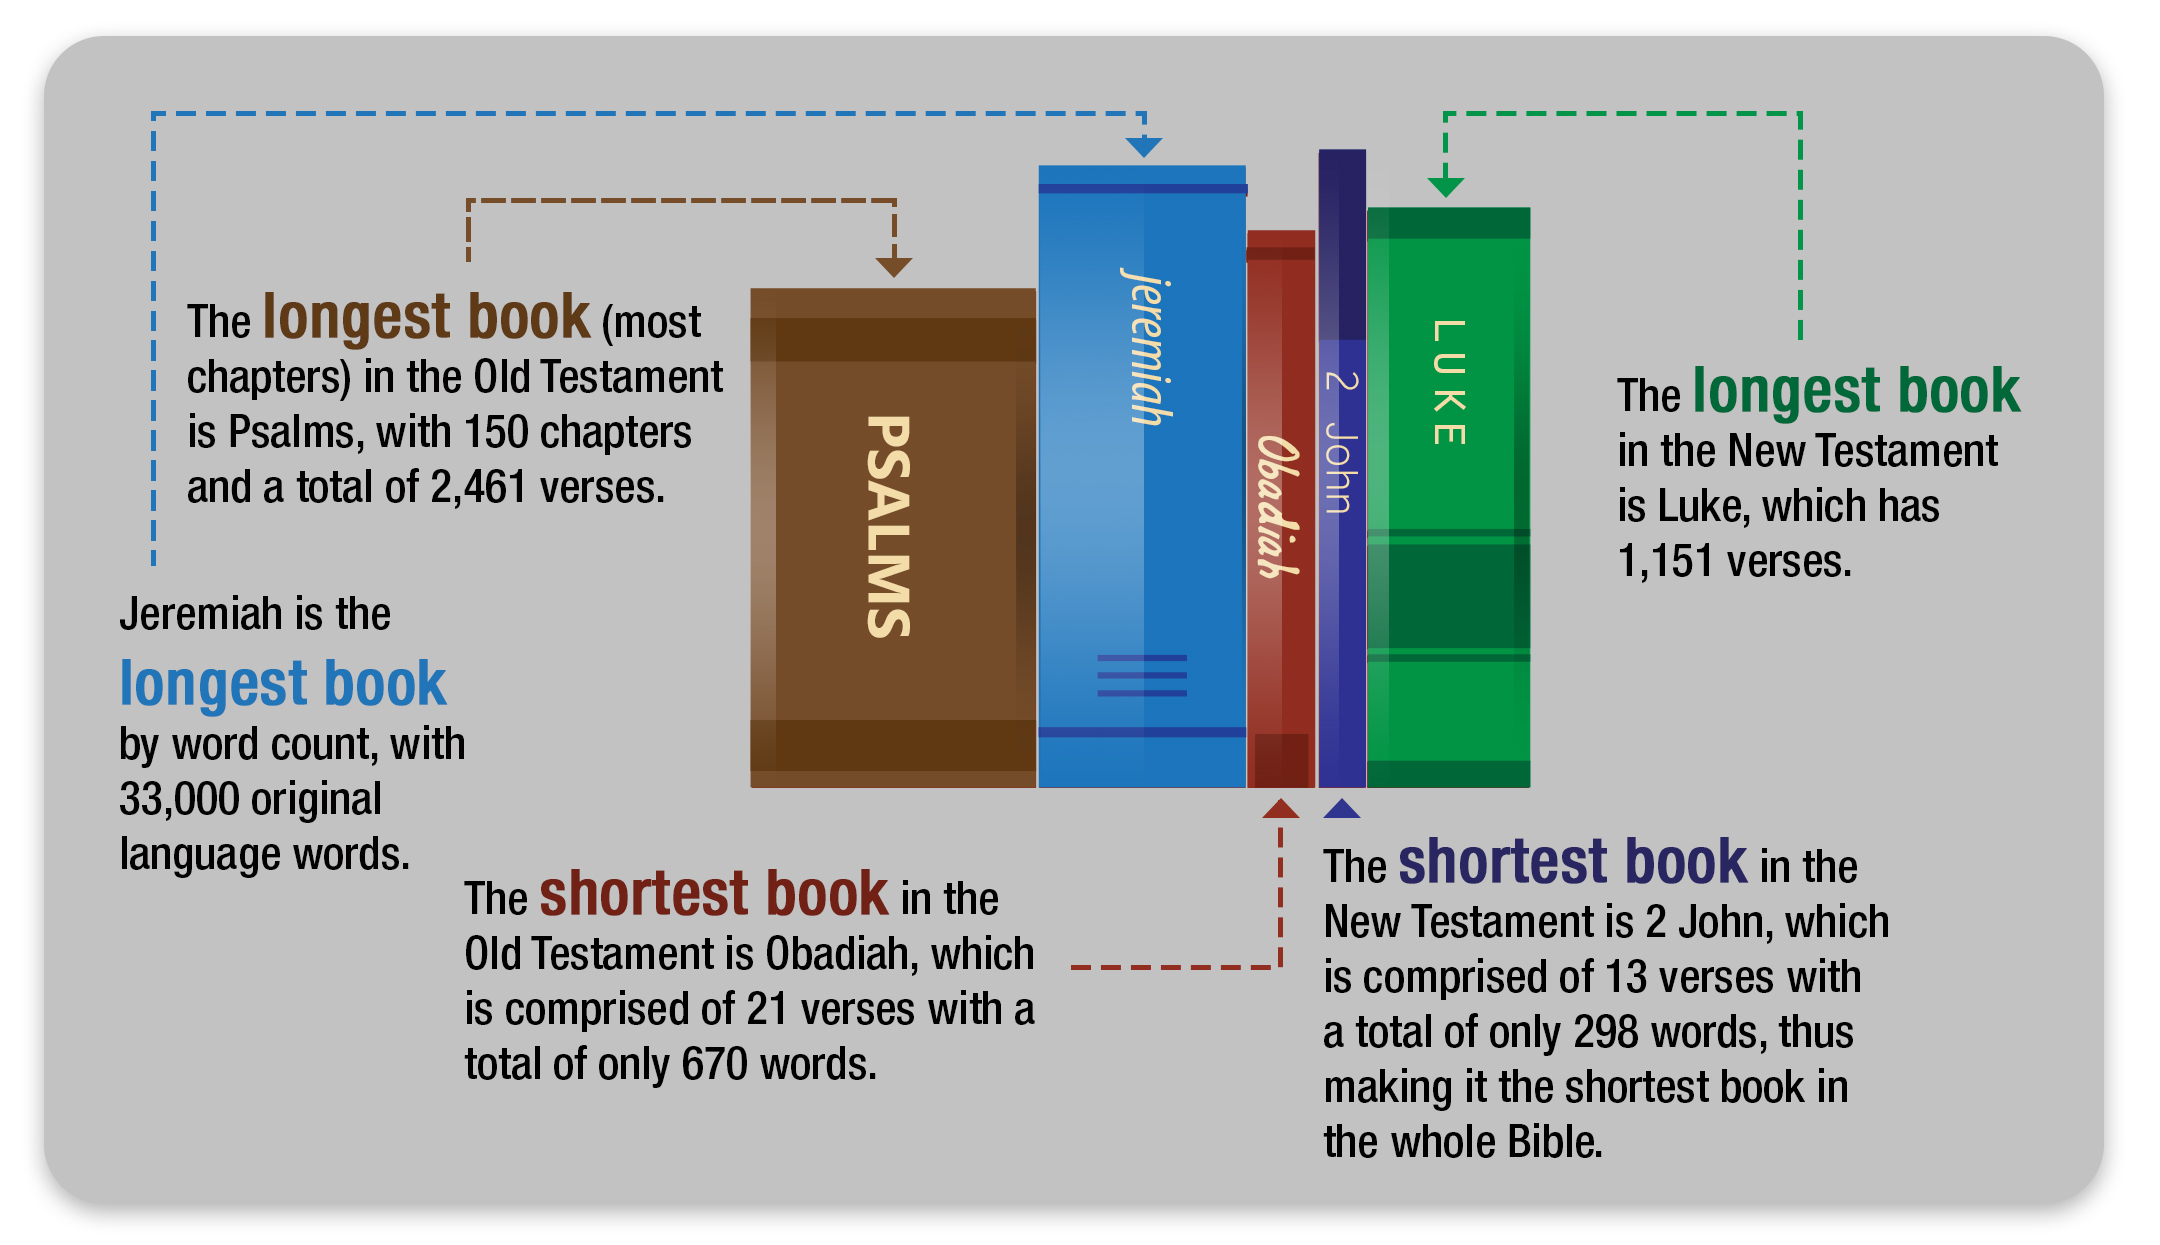 Get Bible Gateway's 25 Extremes in the Bible Infographic